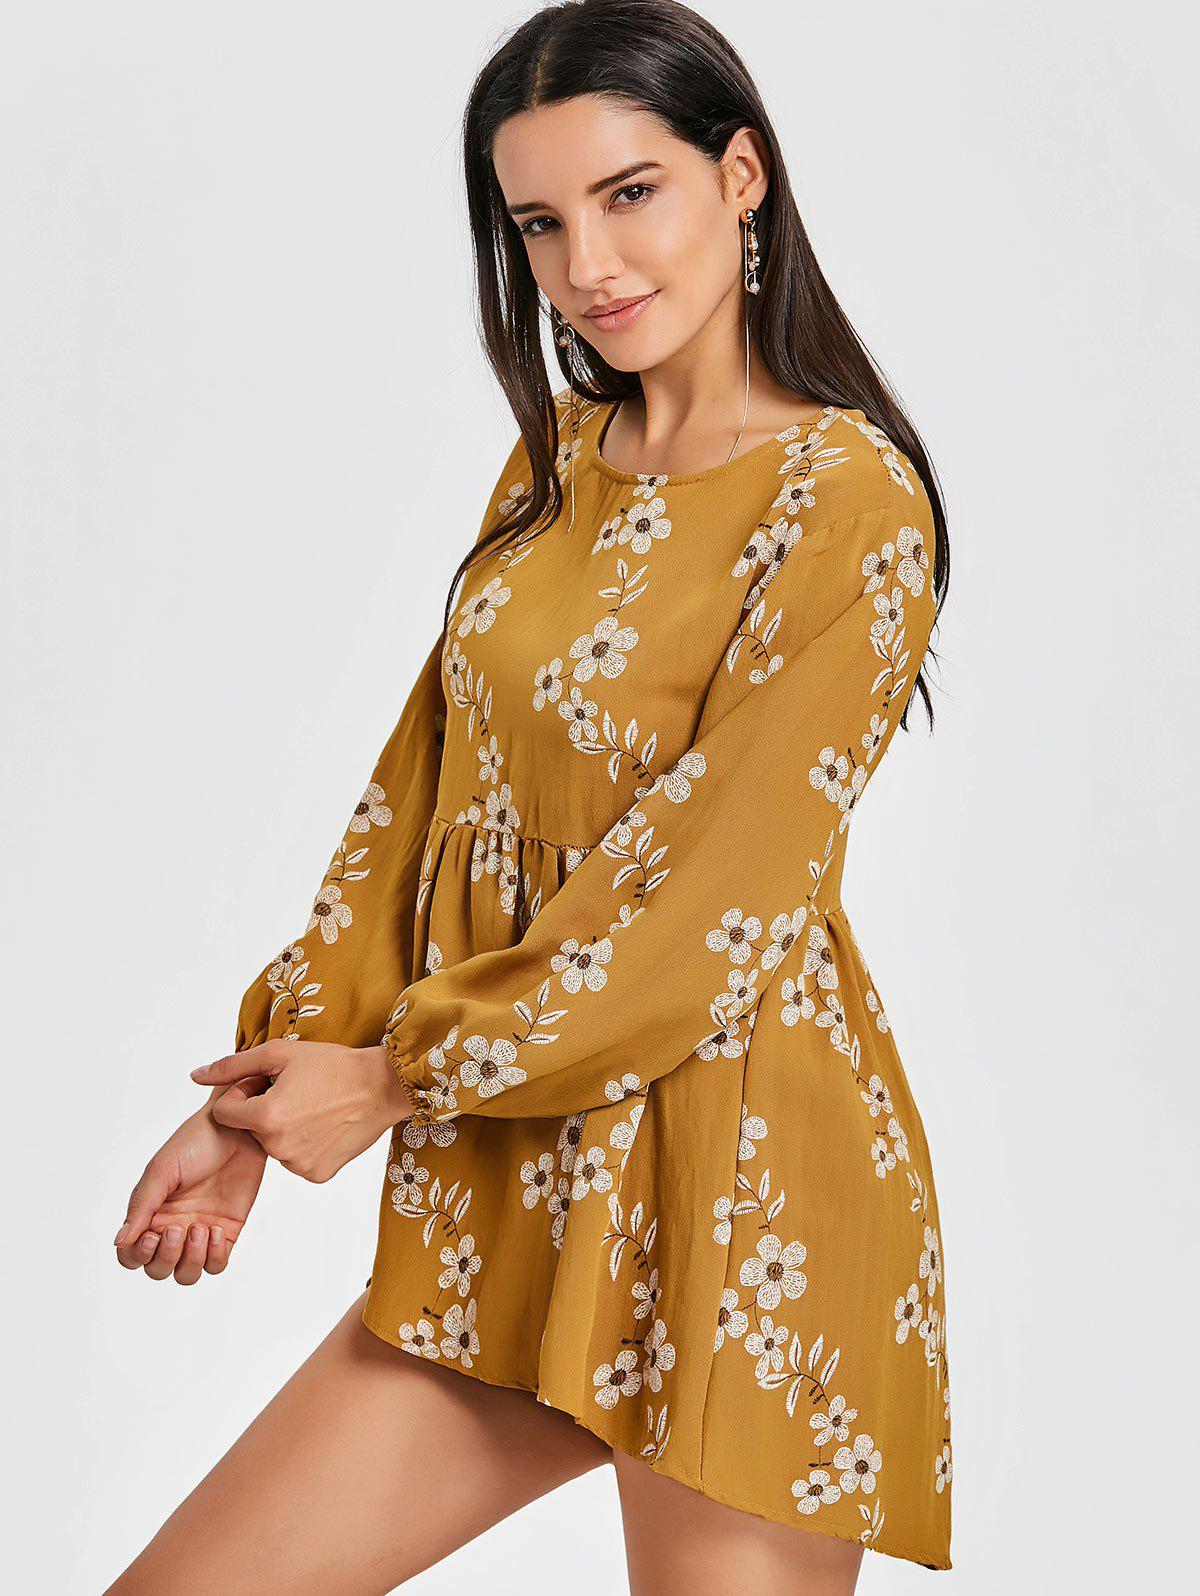 High Low Floral Mini Dress - YELLOW S